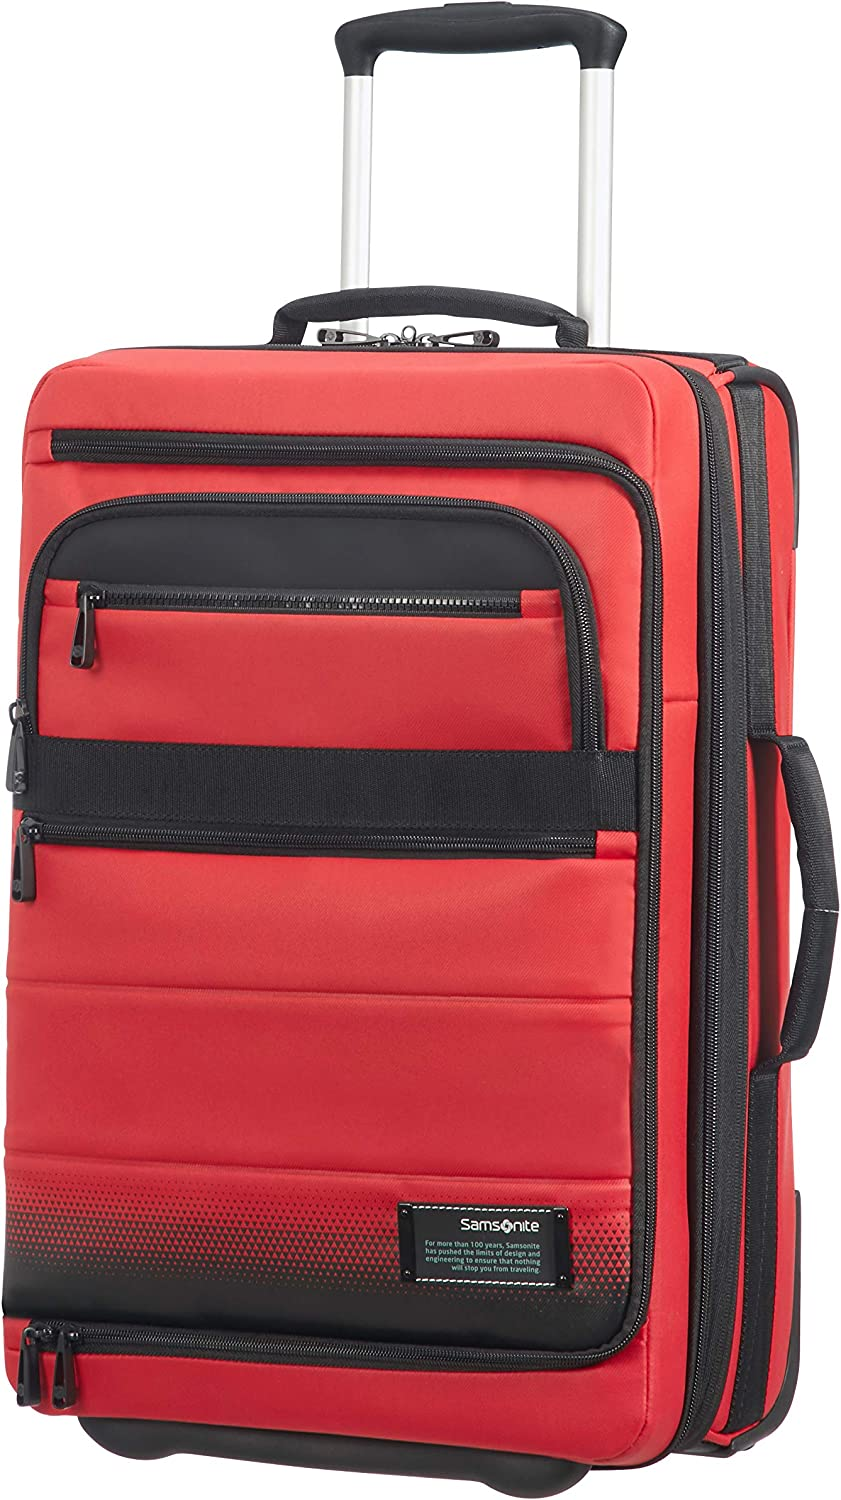 Samsonite Maleta, Lava Red (Rojo) - 115518/4222